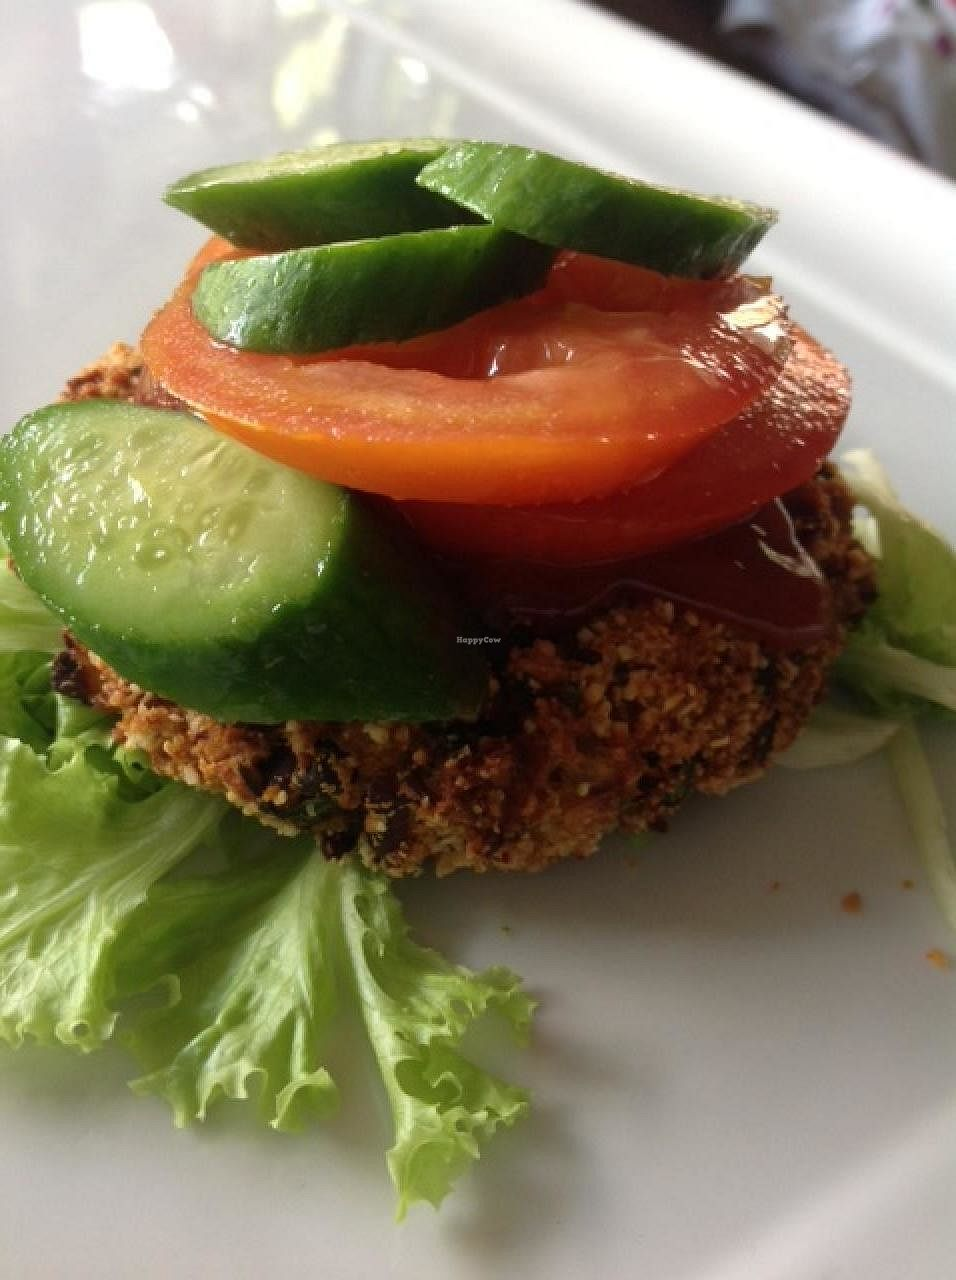 """Photo of Sun Yoga KL Cafe  by <a href=""""/members/profile/SunYogaKLcafe"""">SunYogaKLcafe</a> <br/>Vegan bean burger <br/> January 6, 2014  - <a href='/contact/abuse/image/44479/181203'>Report</a>"""